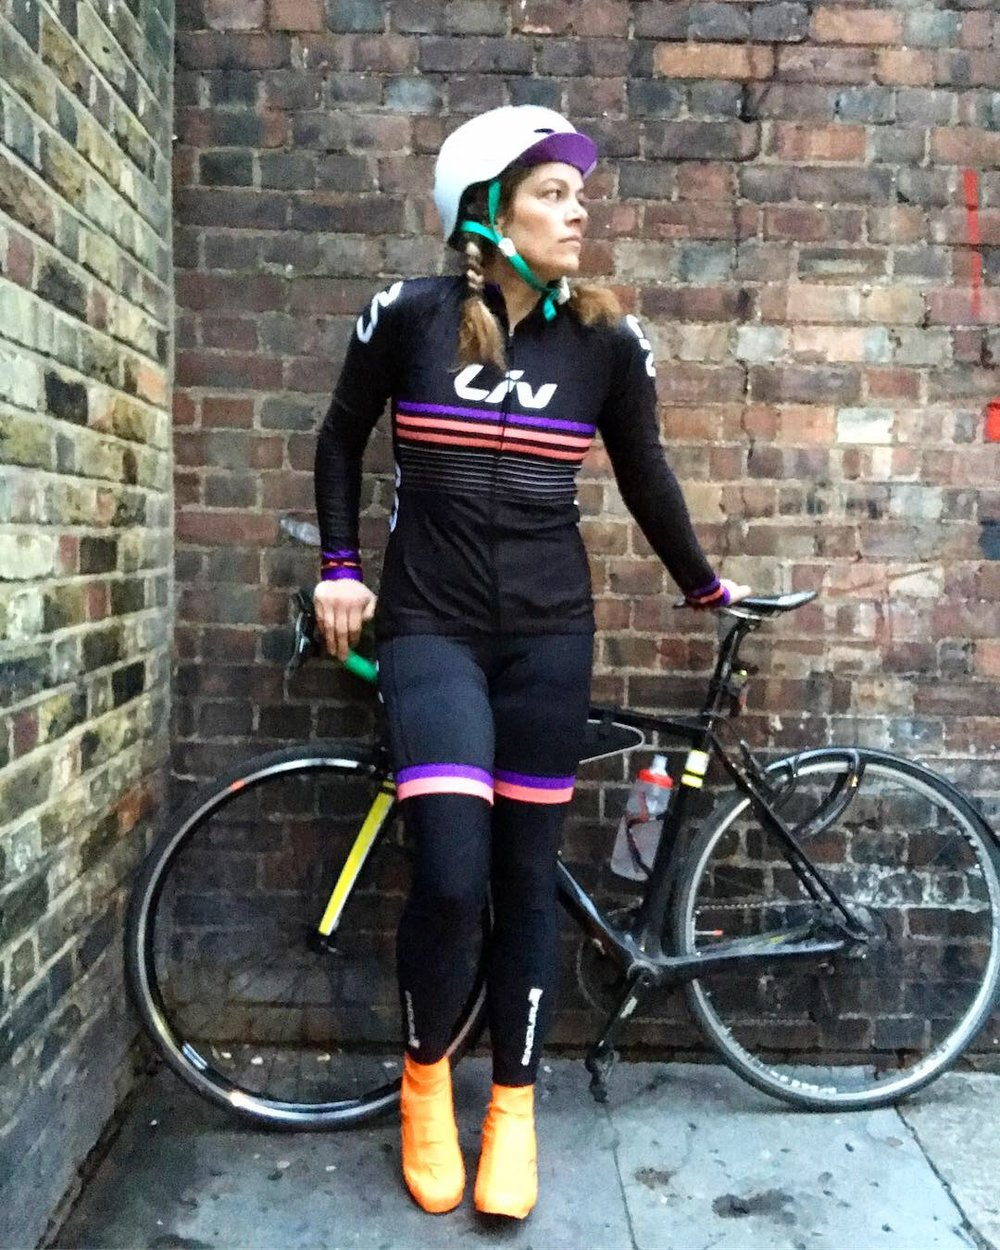 Jersey and shorts courtesy of Liv Cycling.